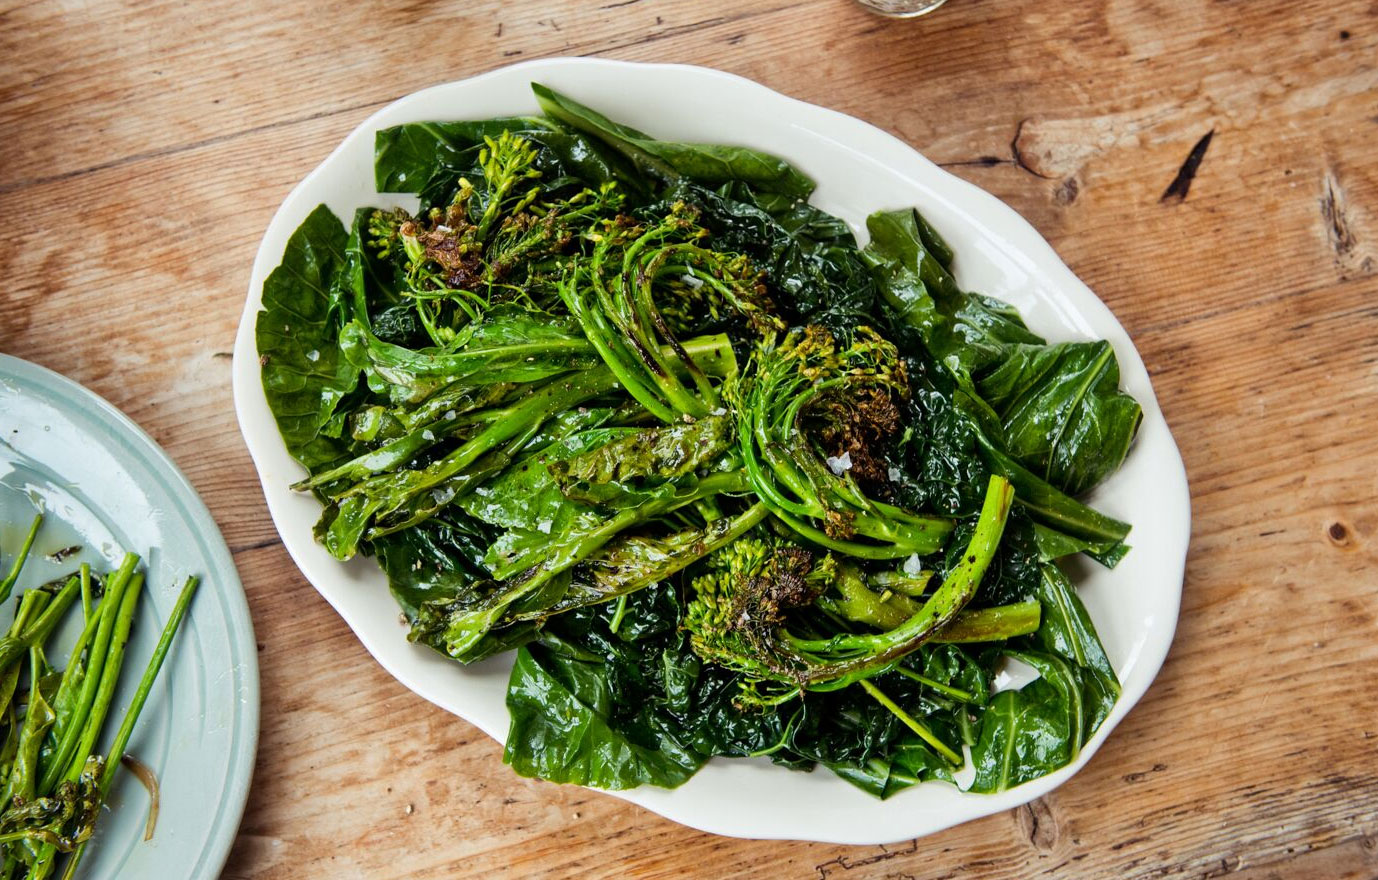 Sautéed Broccolini and Collard Greens